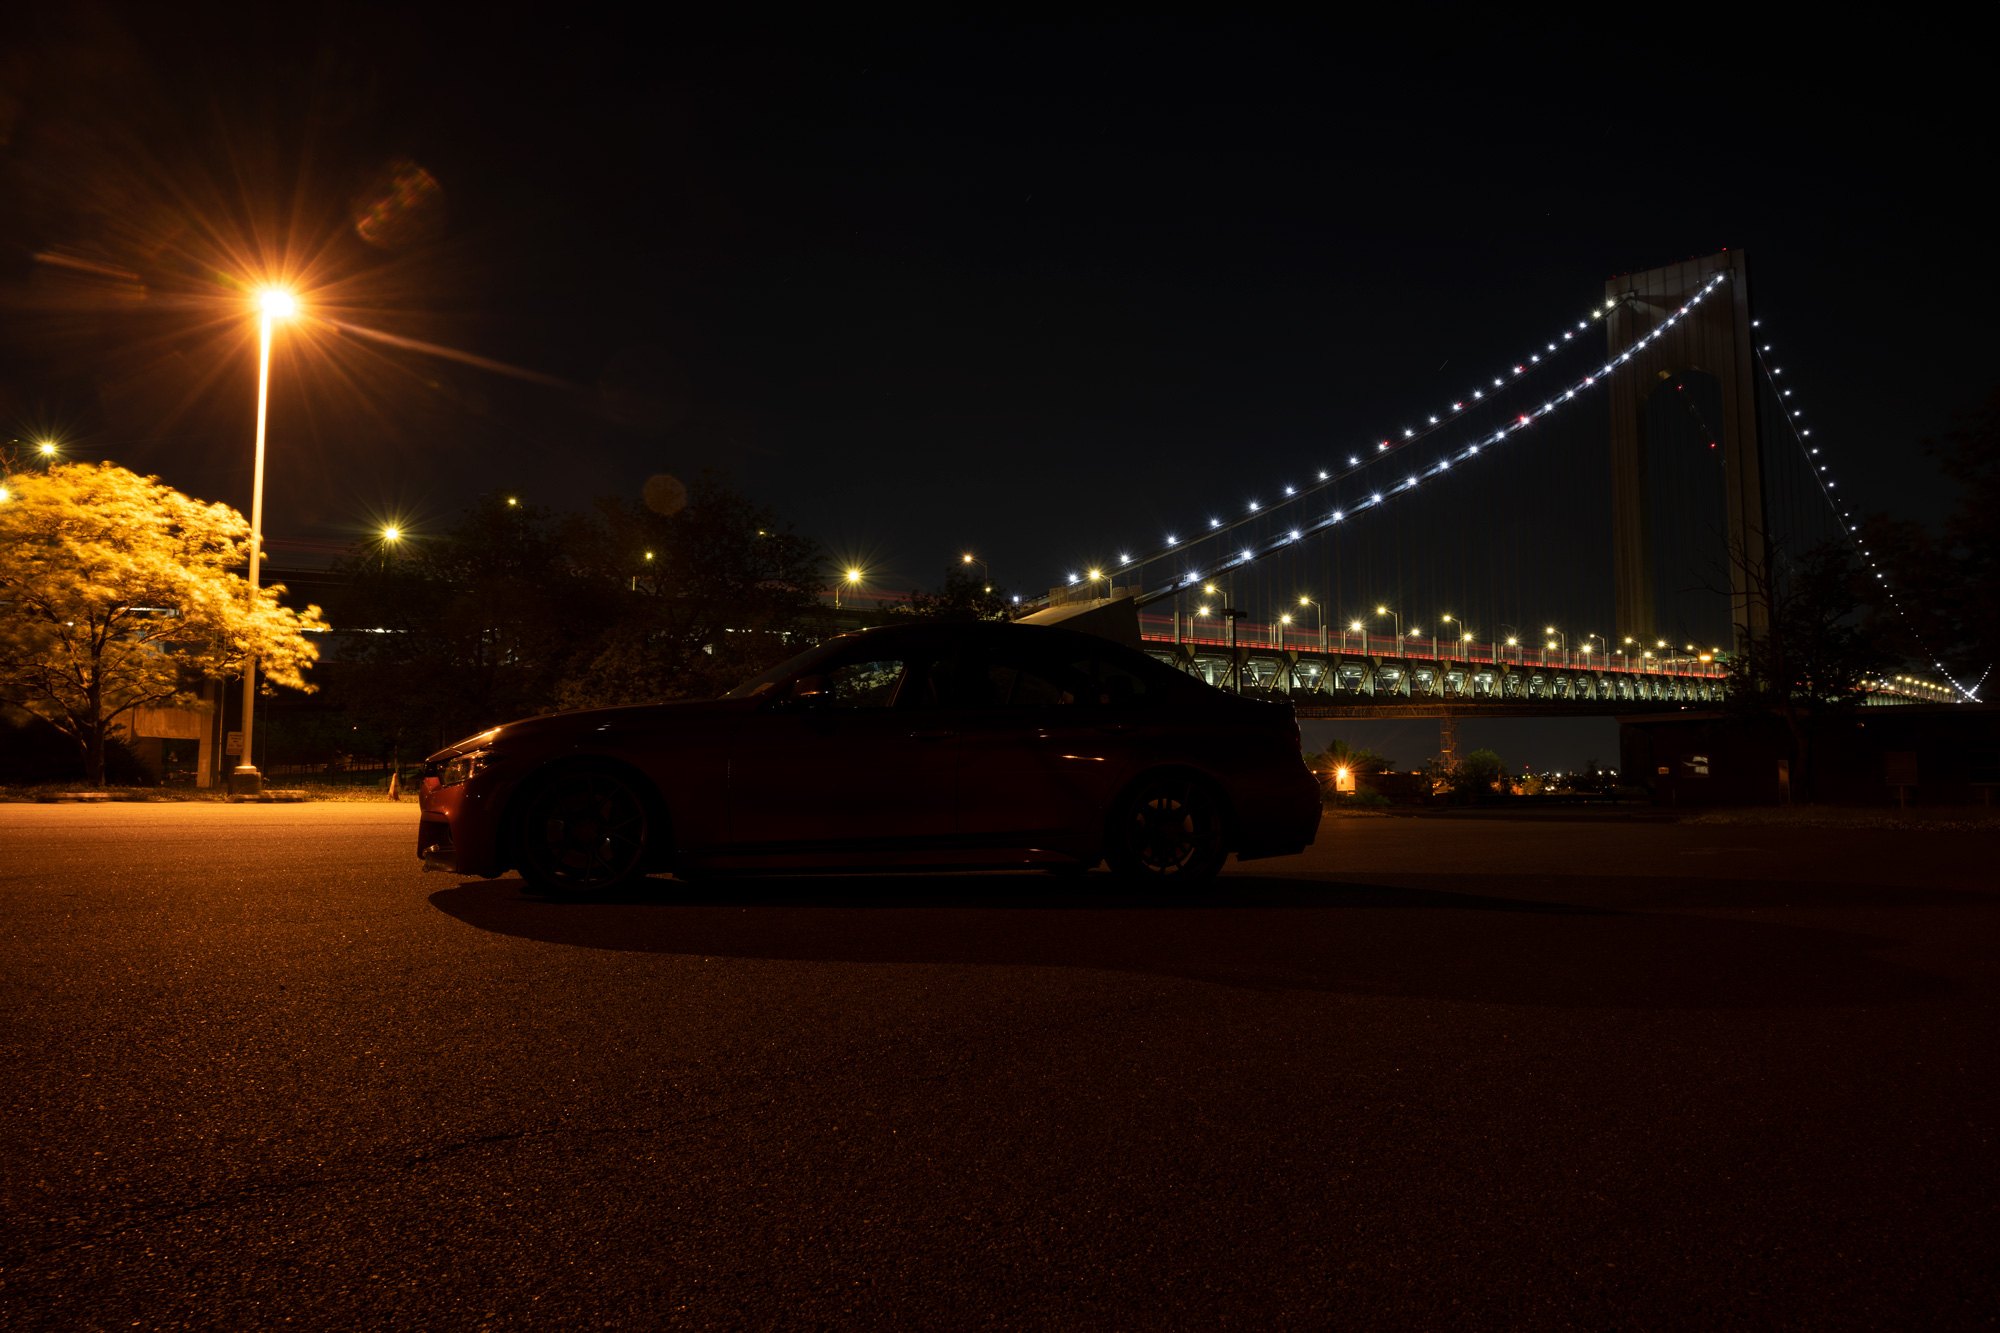 BMW 3 Series at night